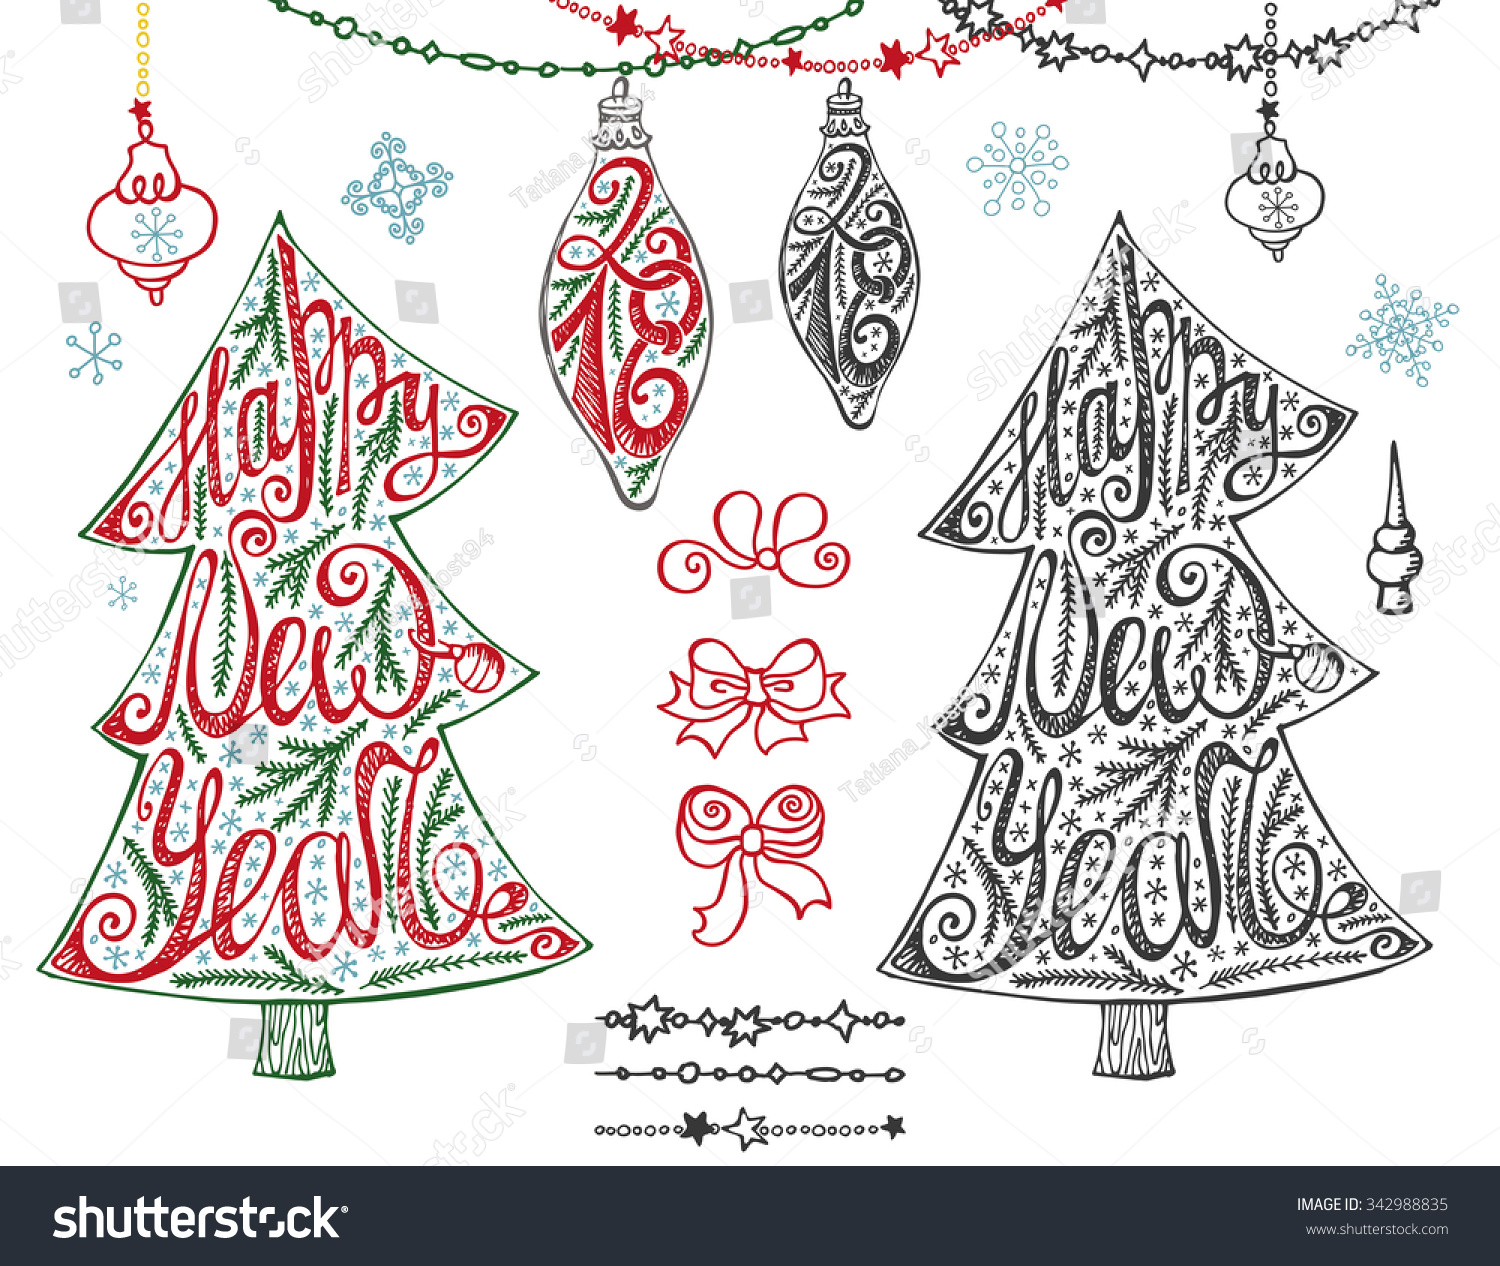 Christmas Tree New Year Lettering Hand Drawn Doodle Stock Vector ...